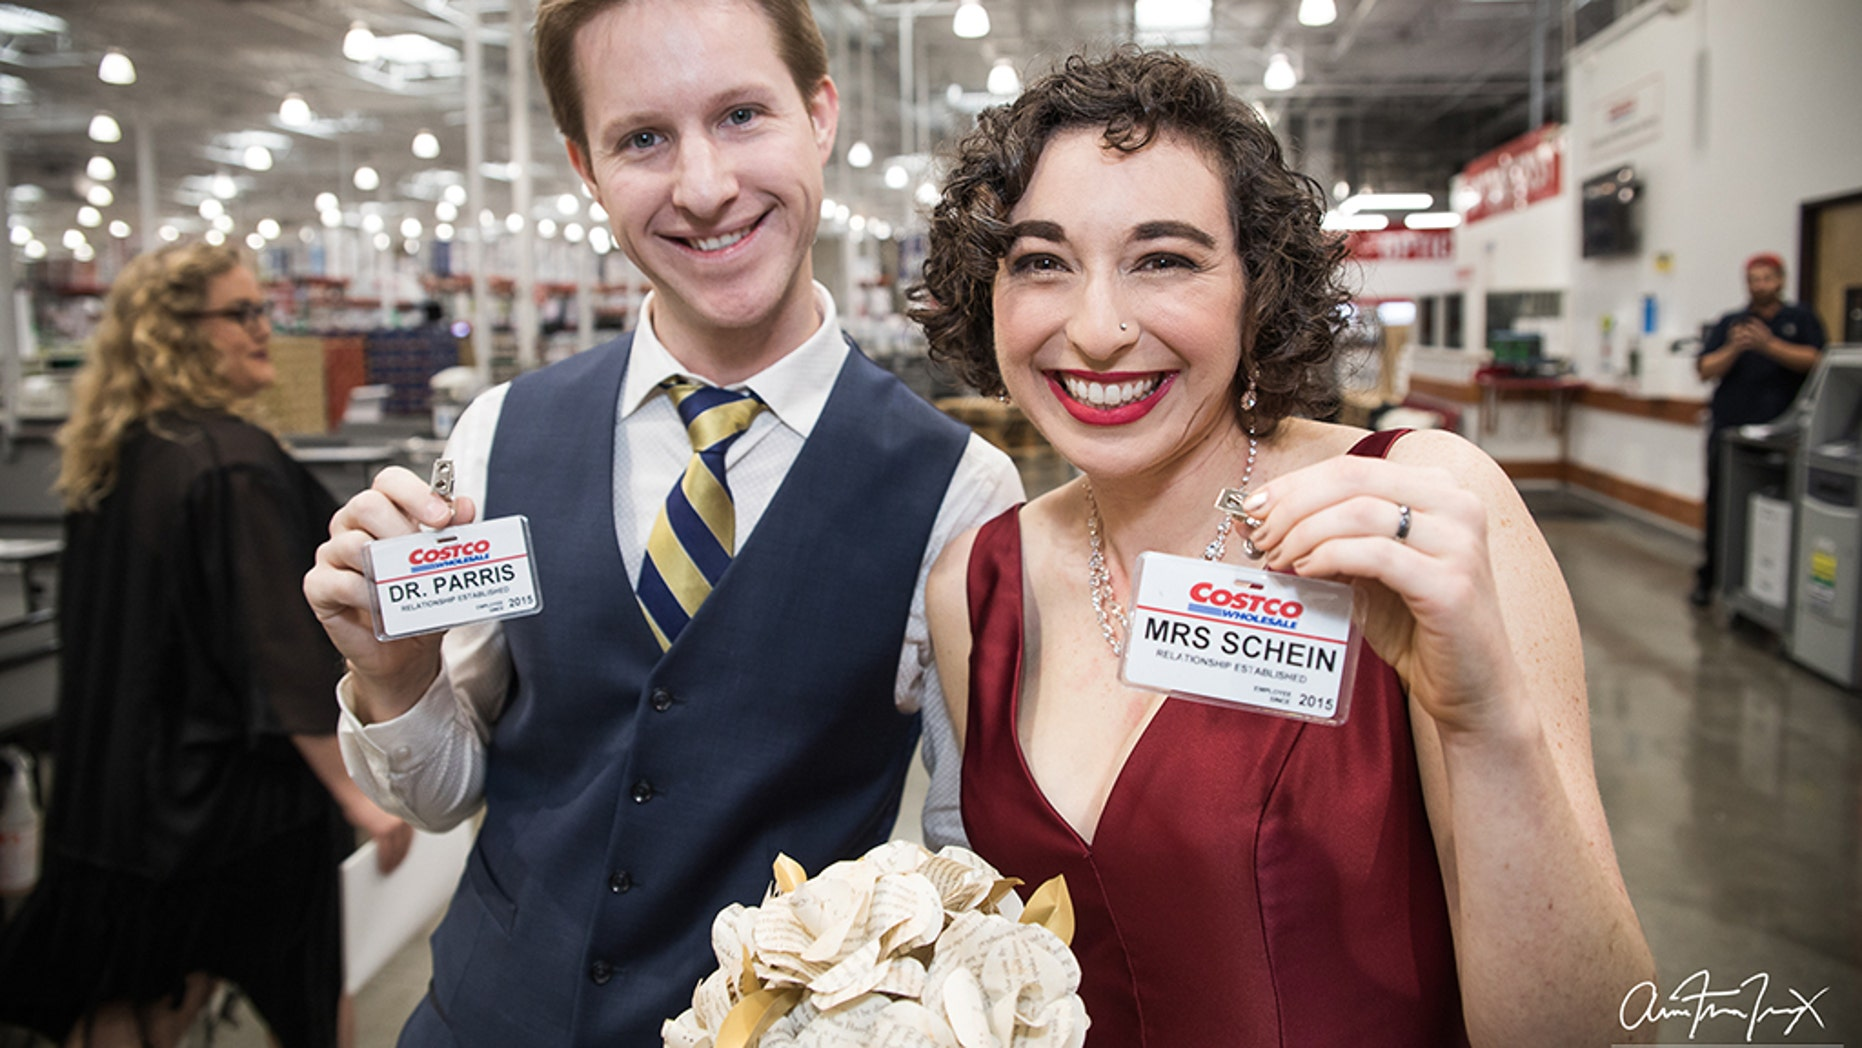 """On Nov. 29, Margot Schein and Julian Parris pronounced """"I do"""" during a Costco in a Mission Valley area of San Diego."""